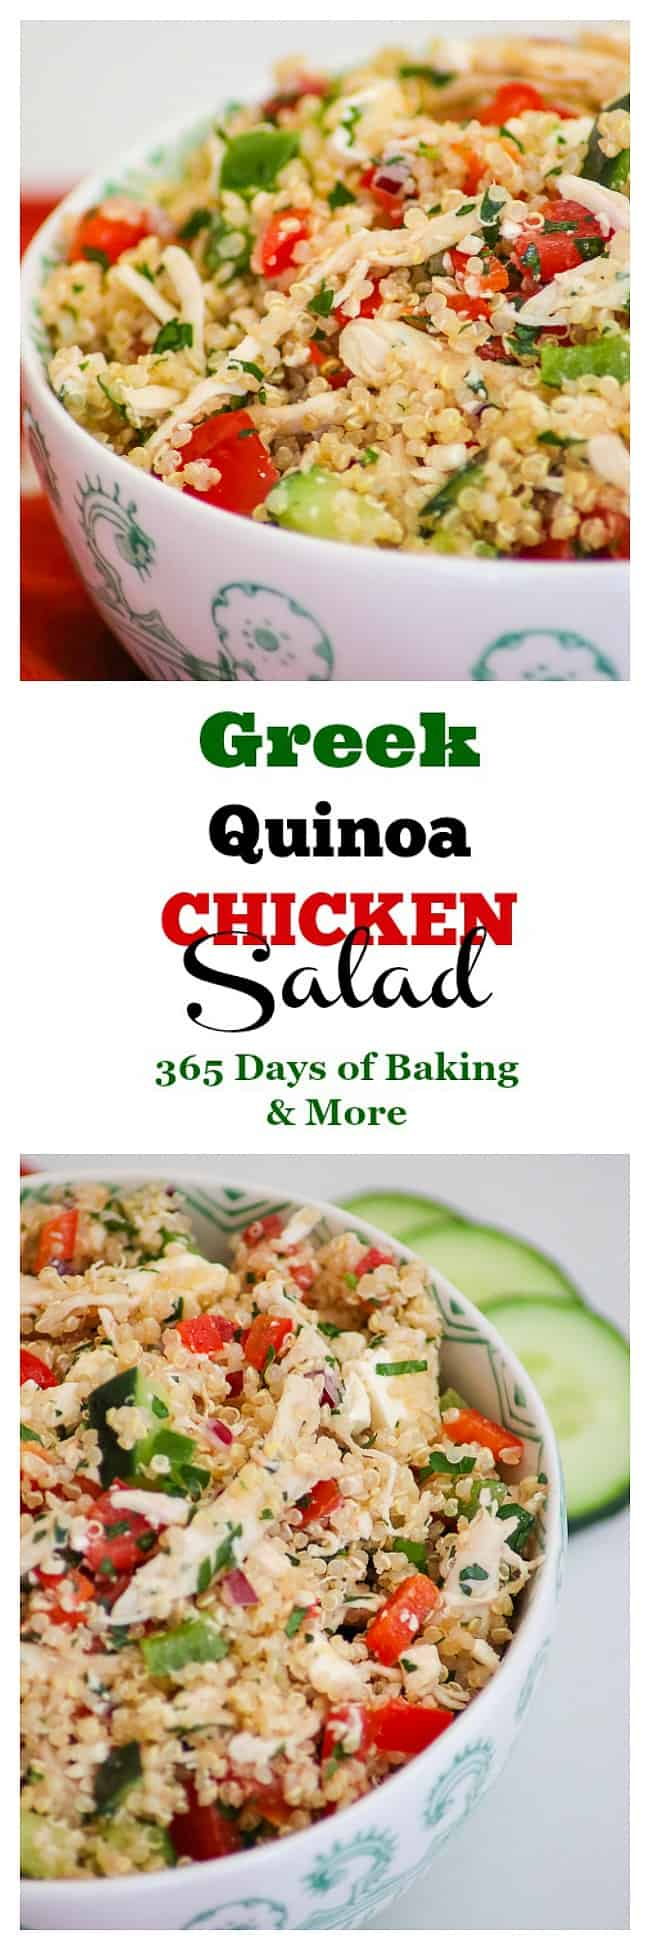 Greek Quinoa Chicken Salad with rotisserie chicken, quinoa, feta cheese, bell peppers, cucumber and a lemon vinaigrette.